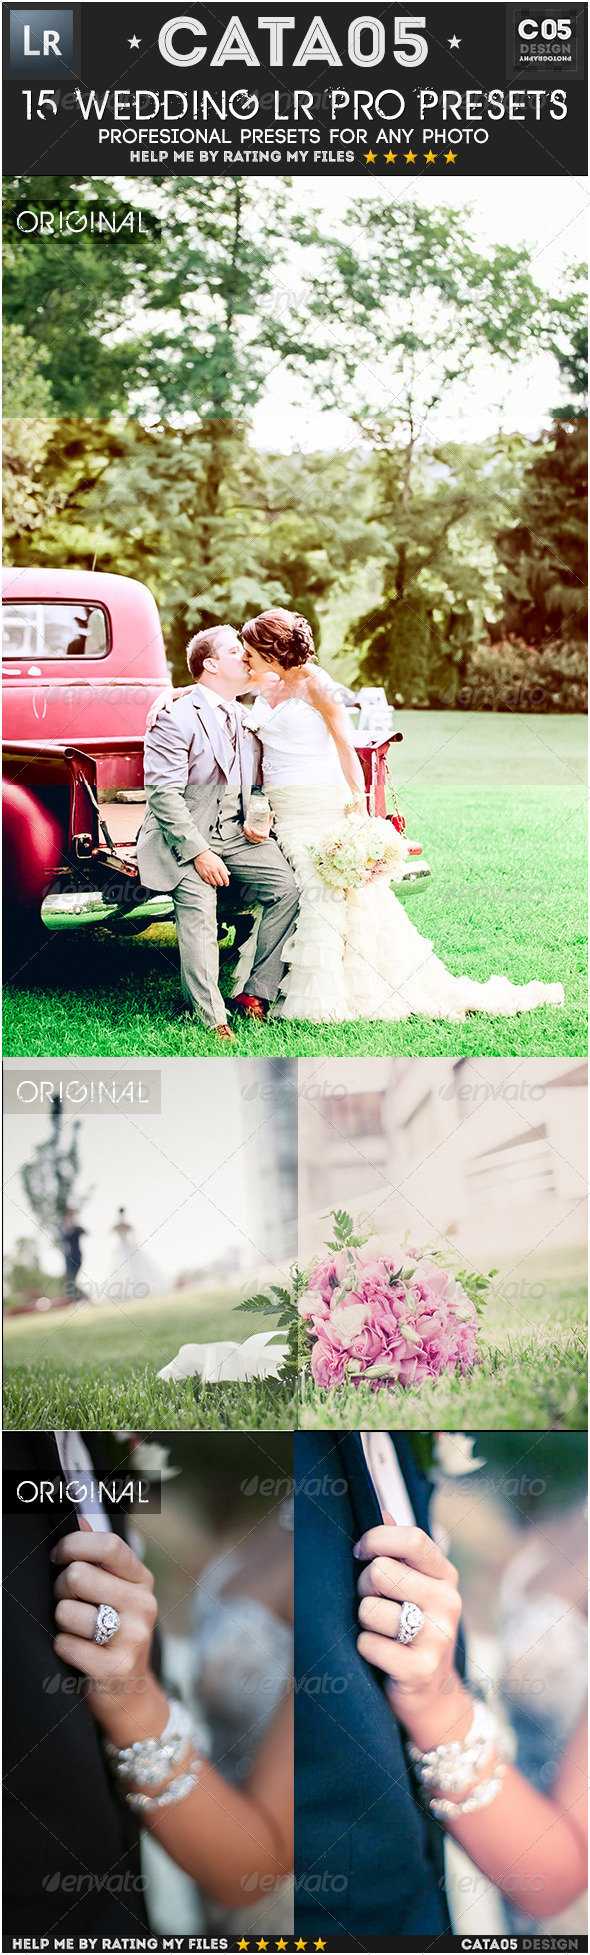 GraphicRiver 15 Wedding Pro Presets 6842092